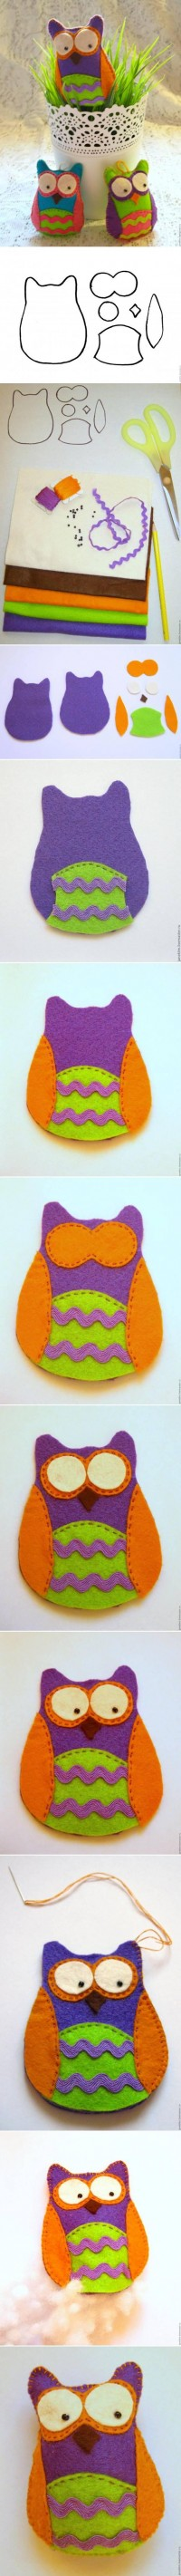 DIY Pretty Felt Owl DIY Projects | UsefulDIY.com